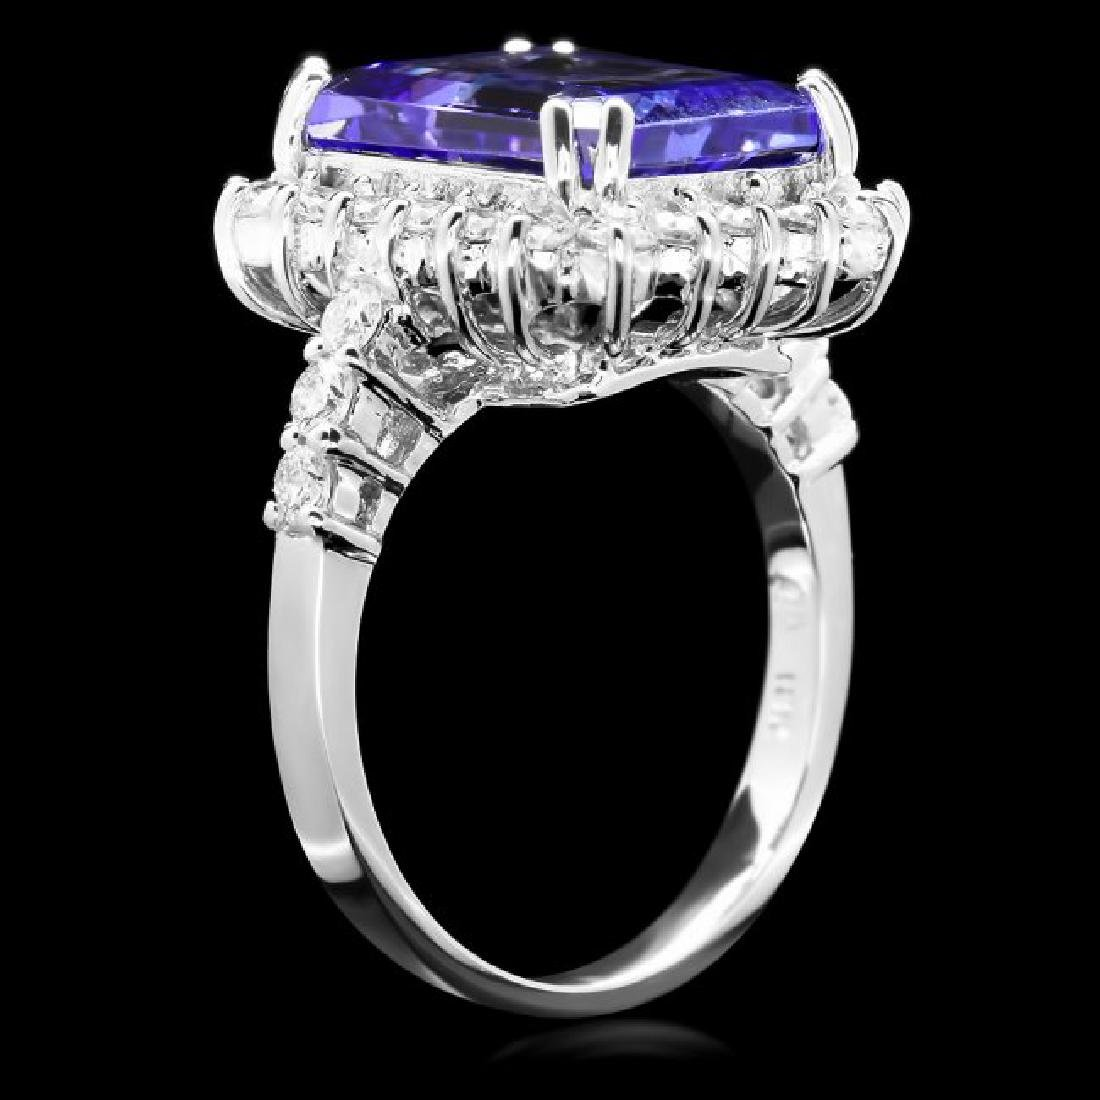 18k Gold 6.50ct Tanzanite 1.15ct Diamond Ring - 3